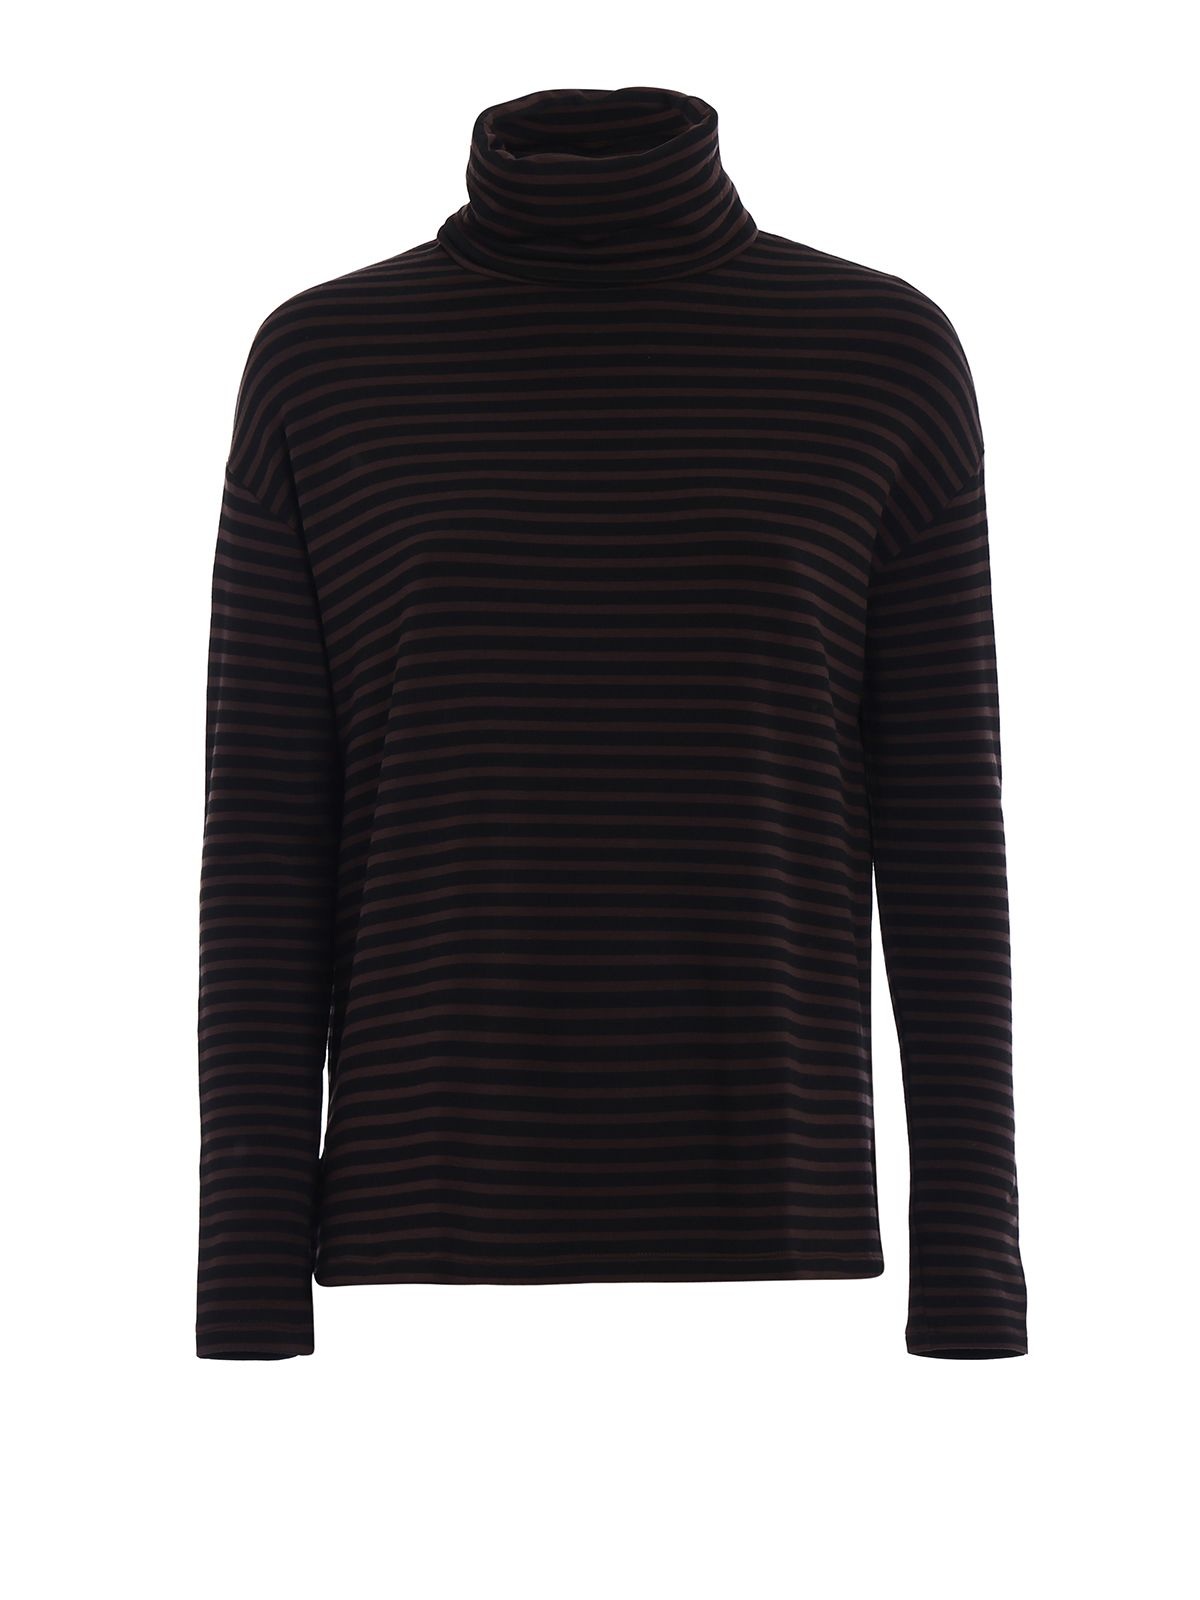 Striped Fleece Jersey T-shirt